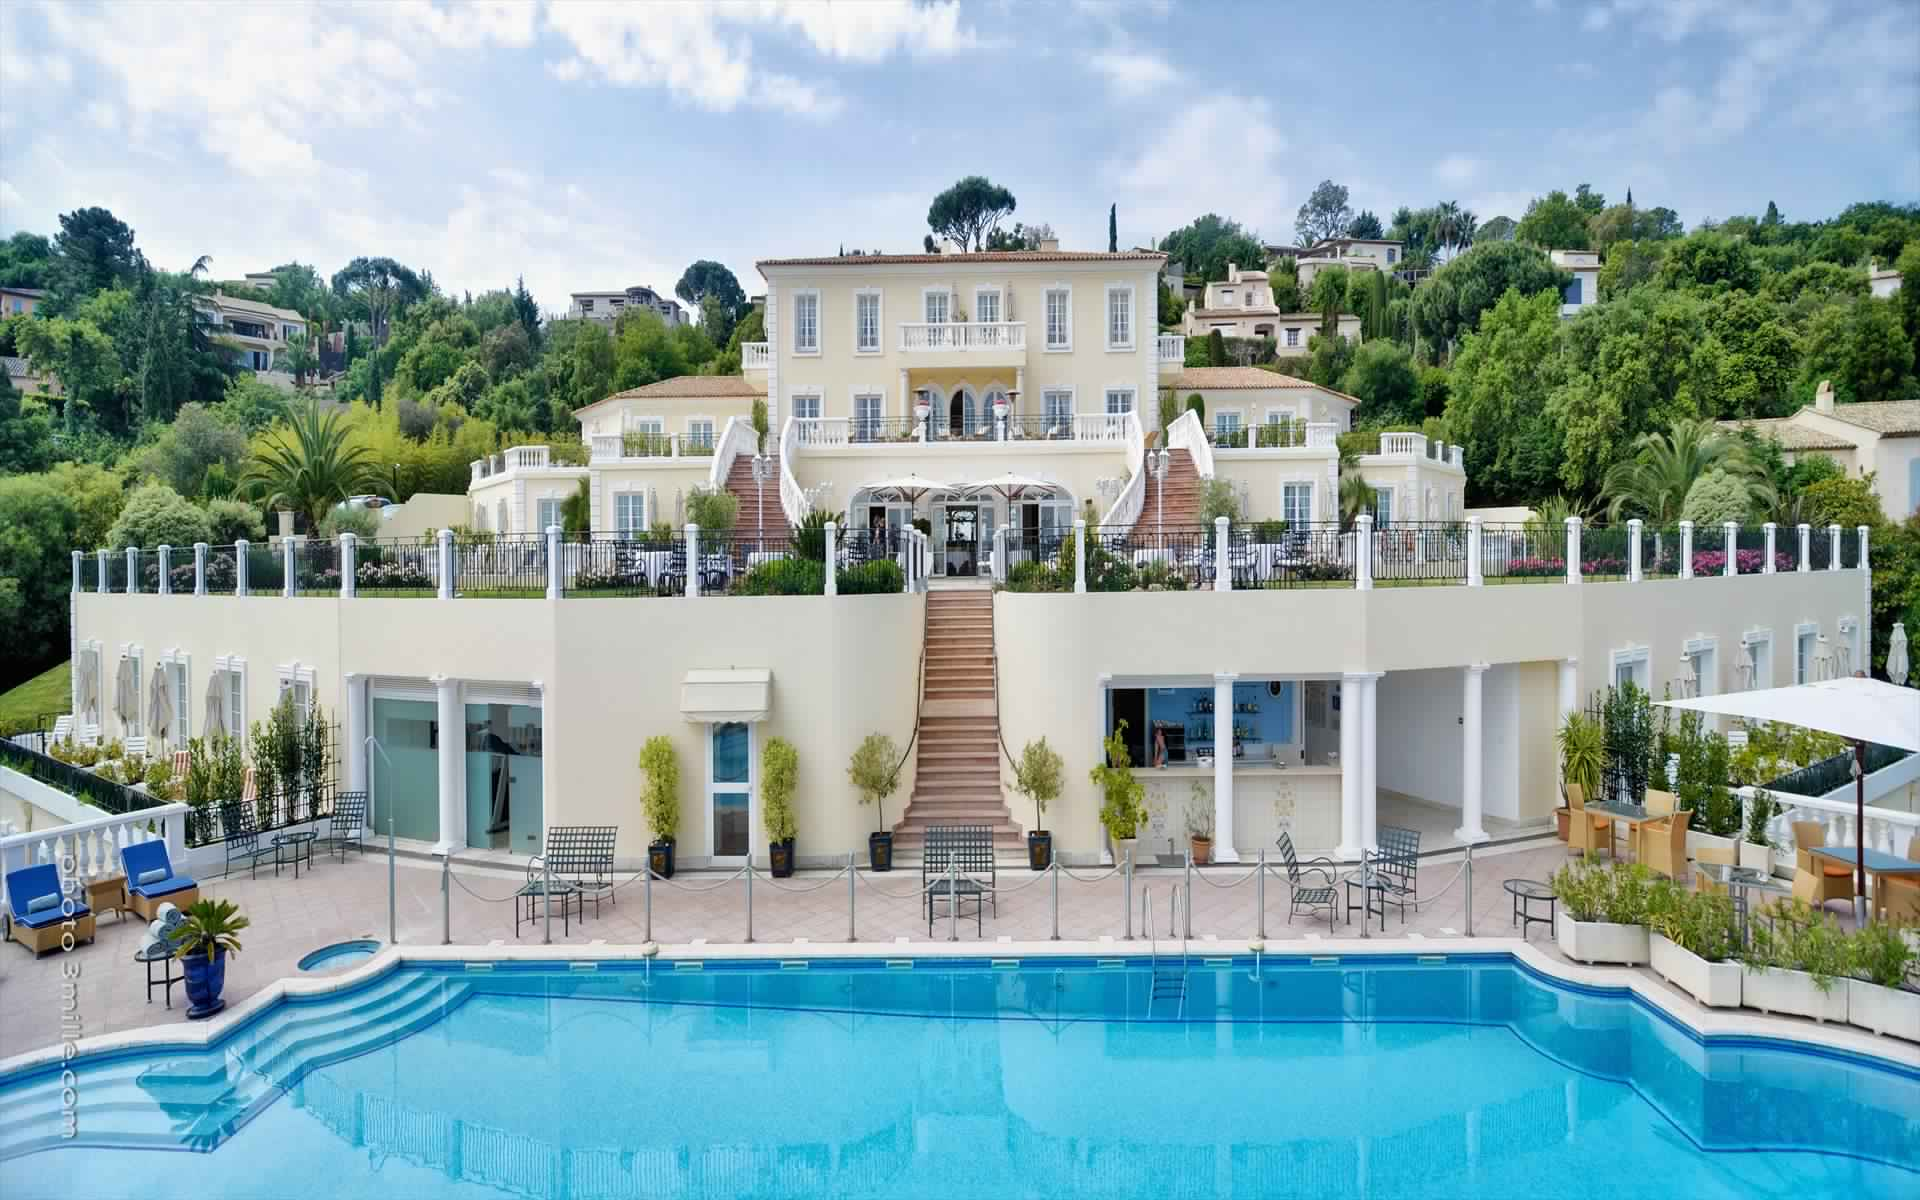 Althoff Hotel Villa Belrose – The best luxury experience in St TropezFashionela